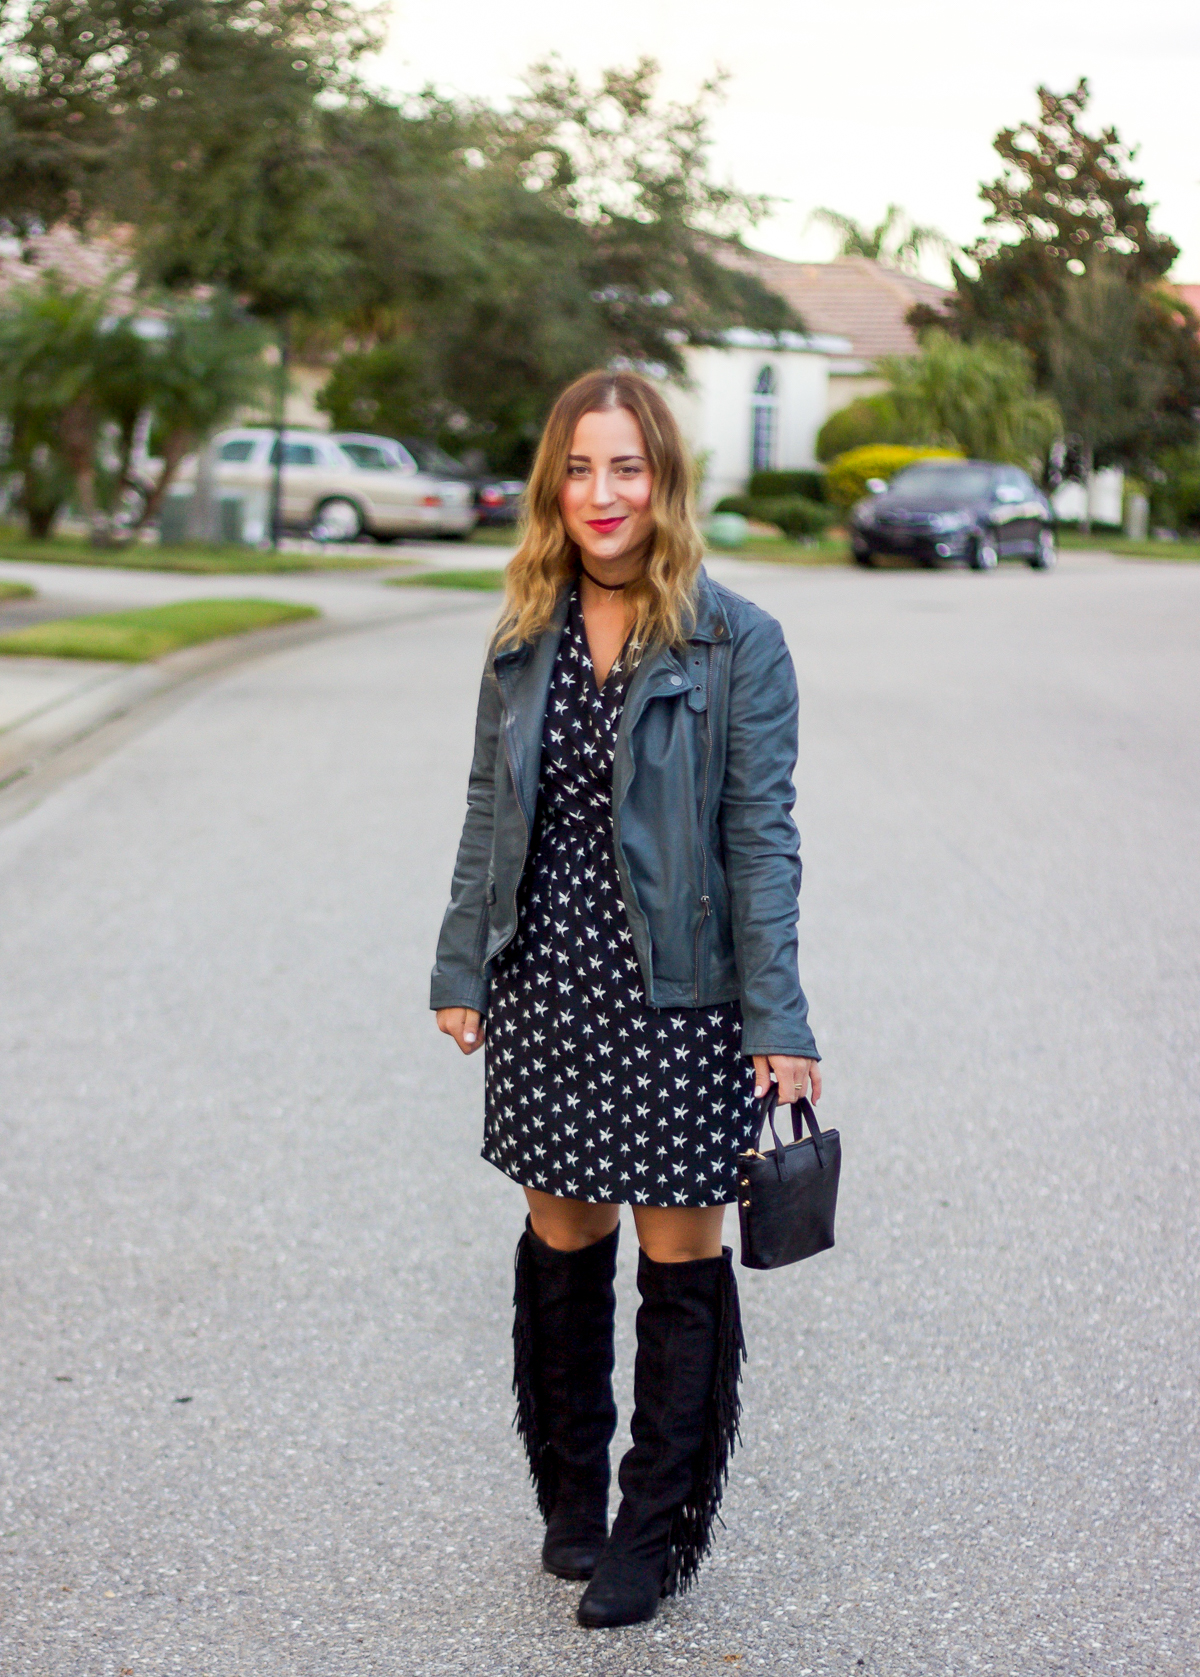 Canadian blogger, Jackie Goldhar of Something About That is wearing a leather moto jacket, black and white printed dress and black Sam Edelman fringe boots